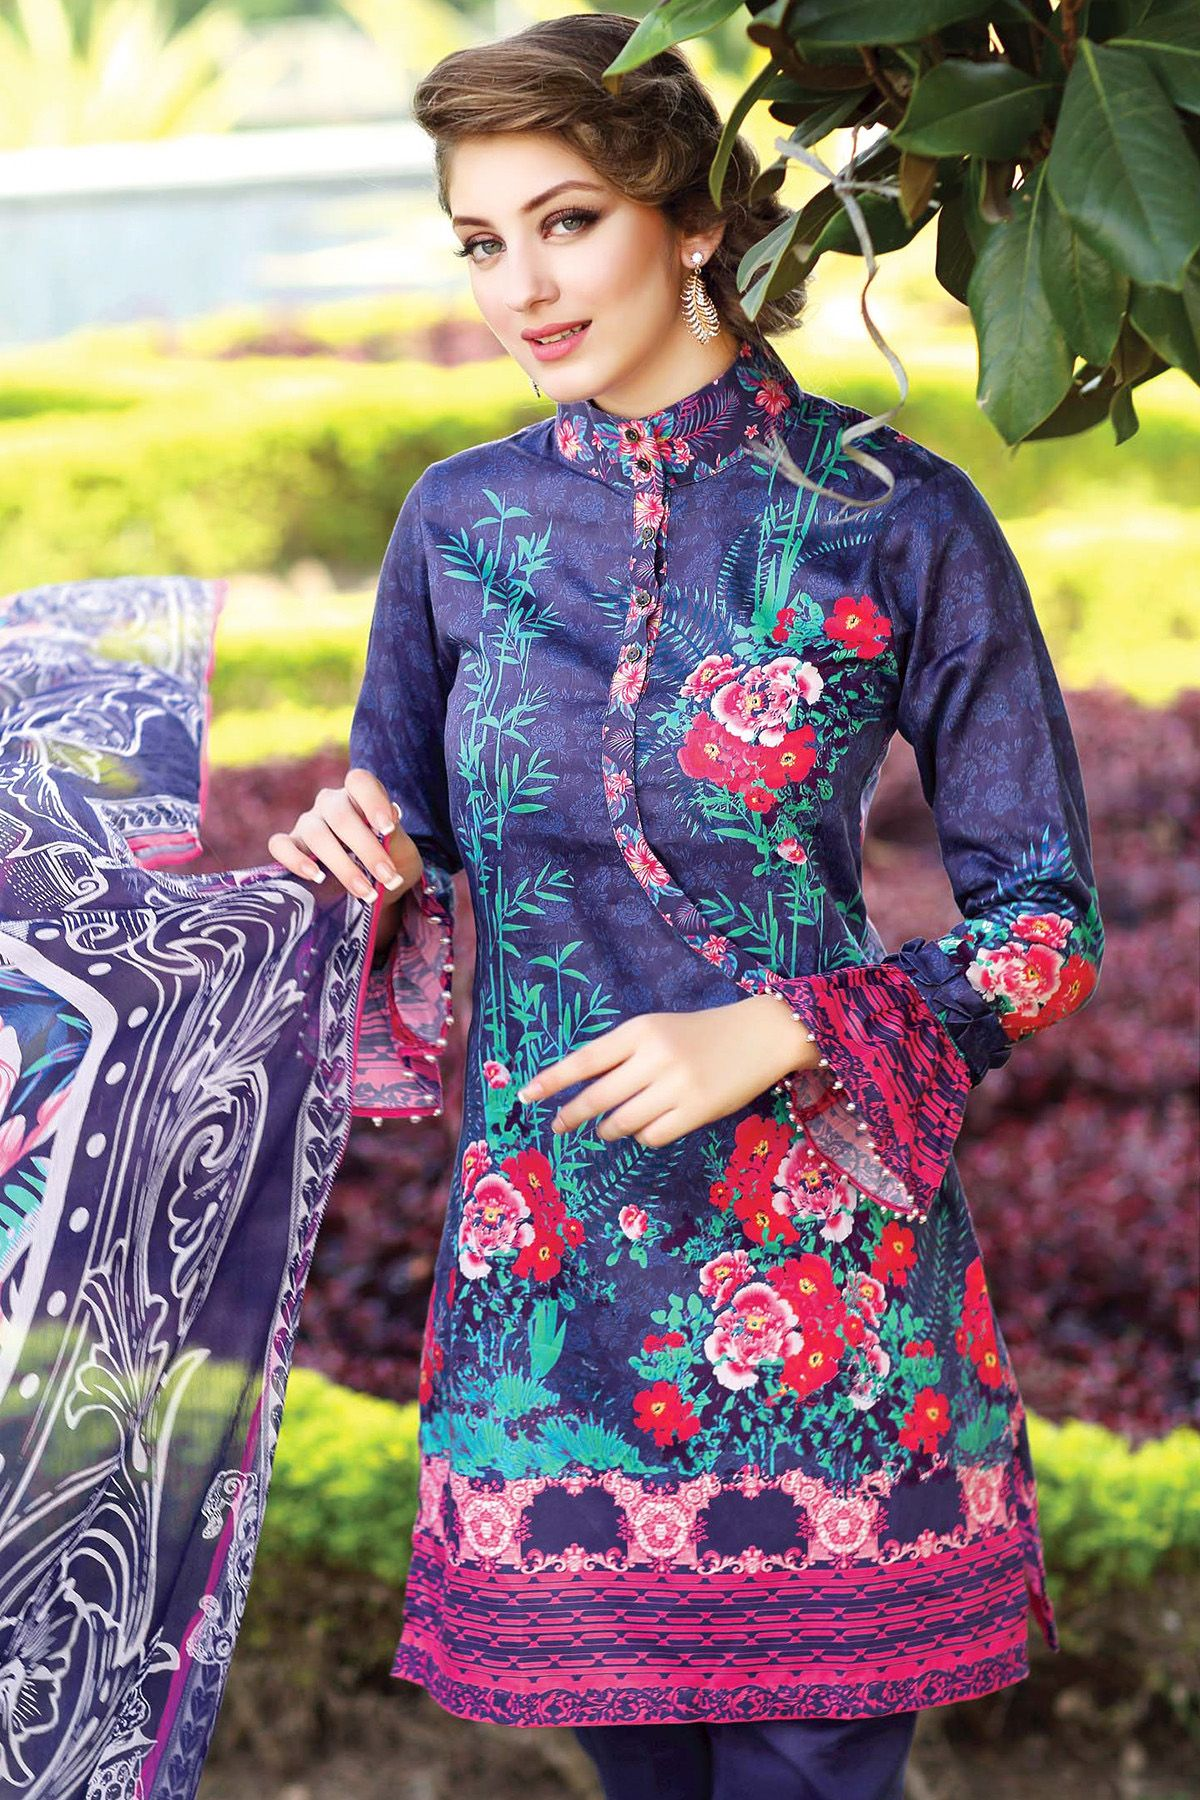 d8b19c046d56 Latest Stitching Styles Of Pakistani Dresses For Girls 2016-2017 ...